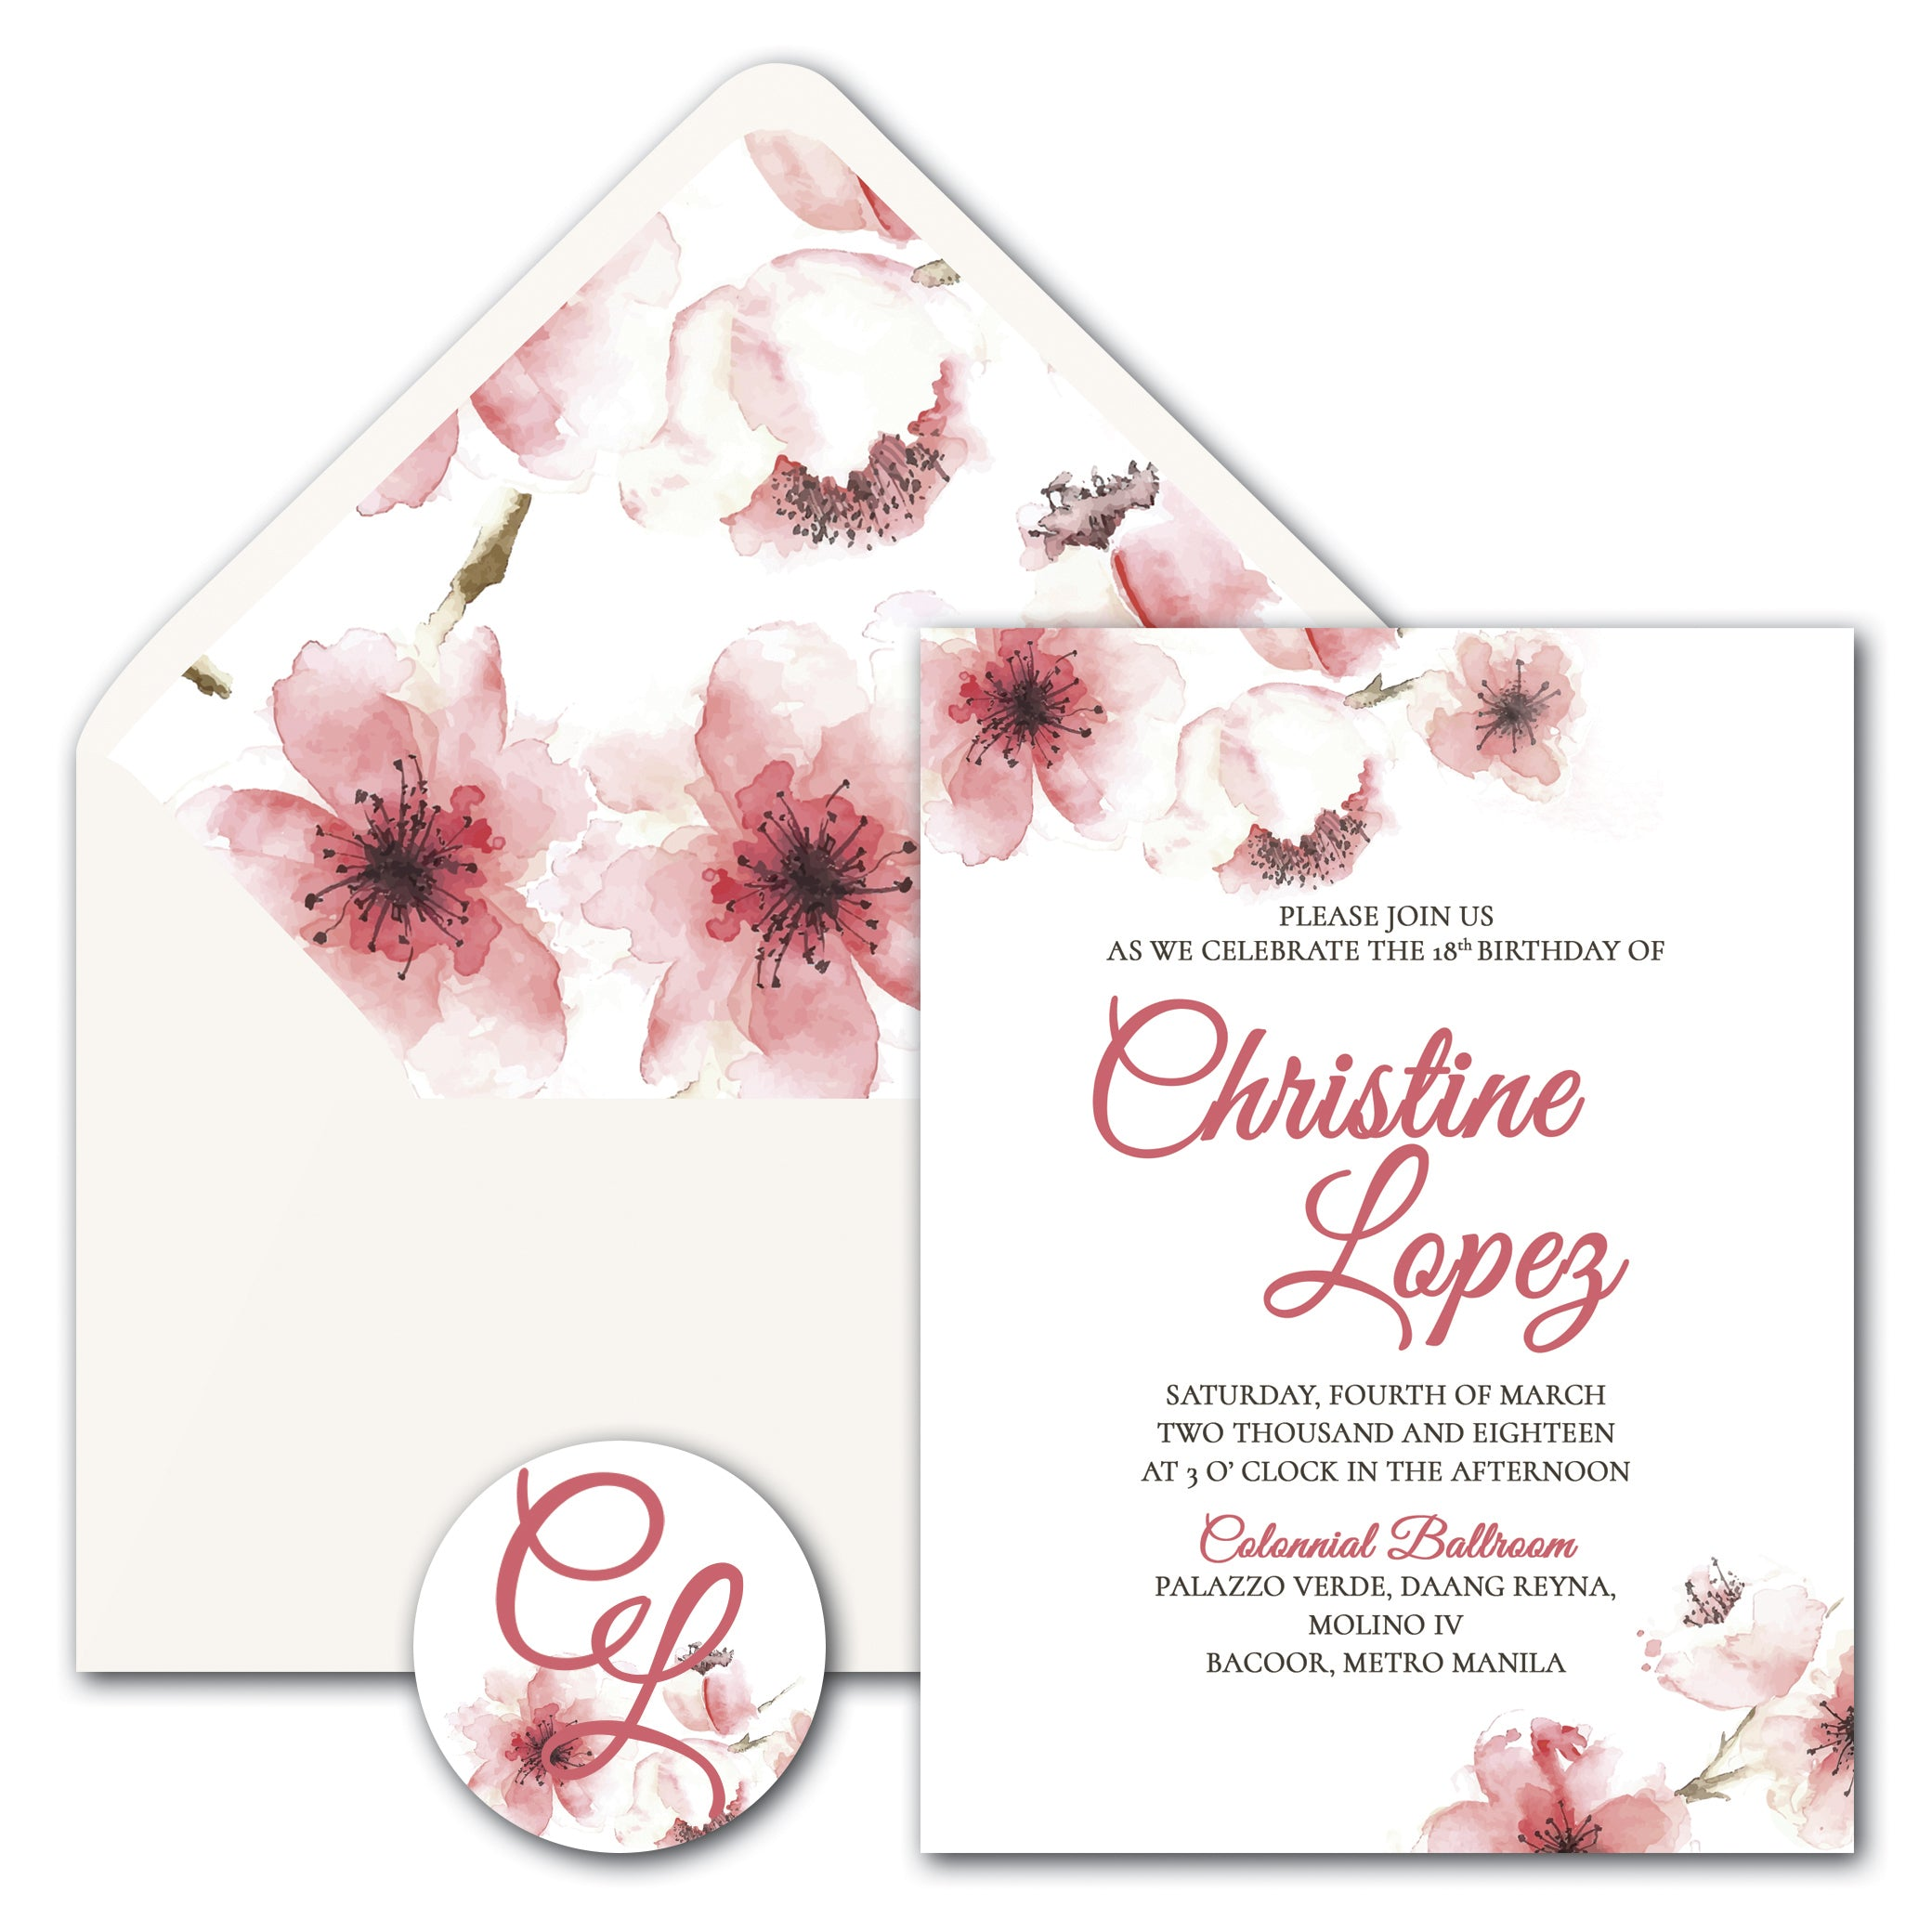 Christine Debut Invitation